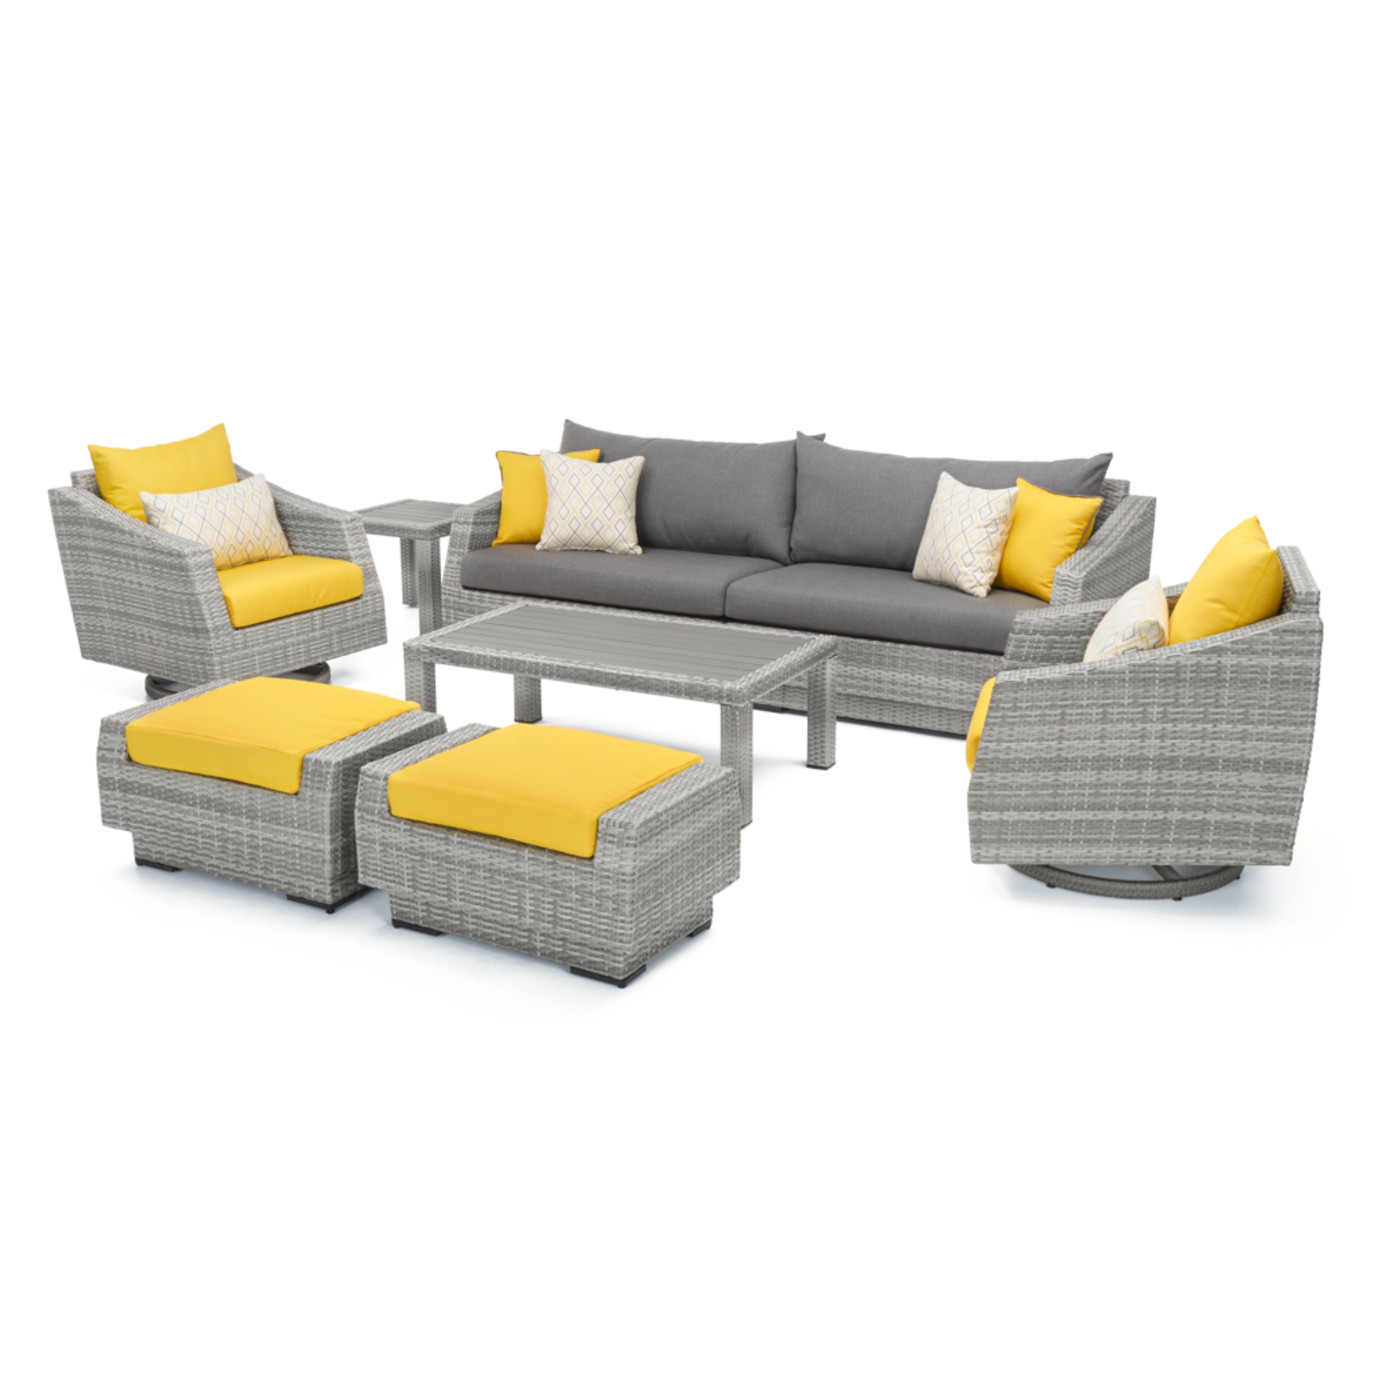 Cannes™ Deluxe 8pc Sofa & Club Chair Set - Sunflower Yellow